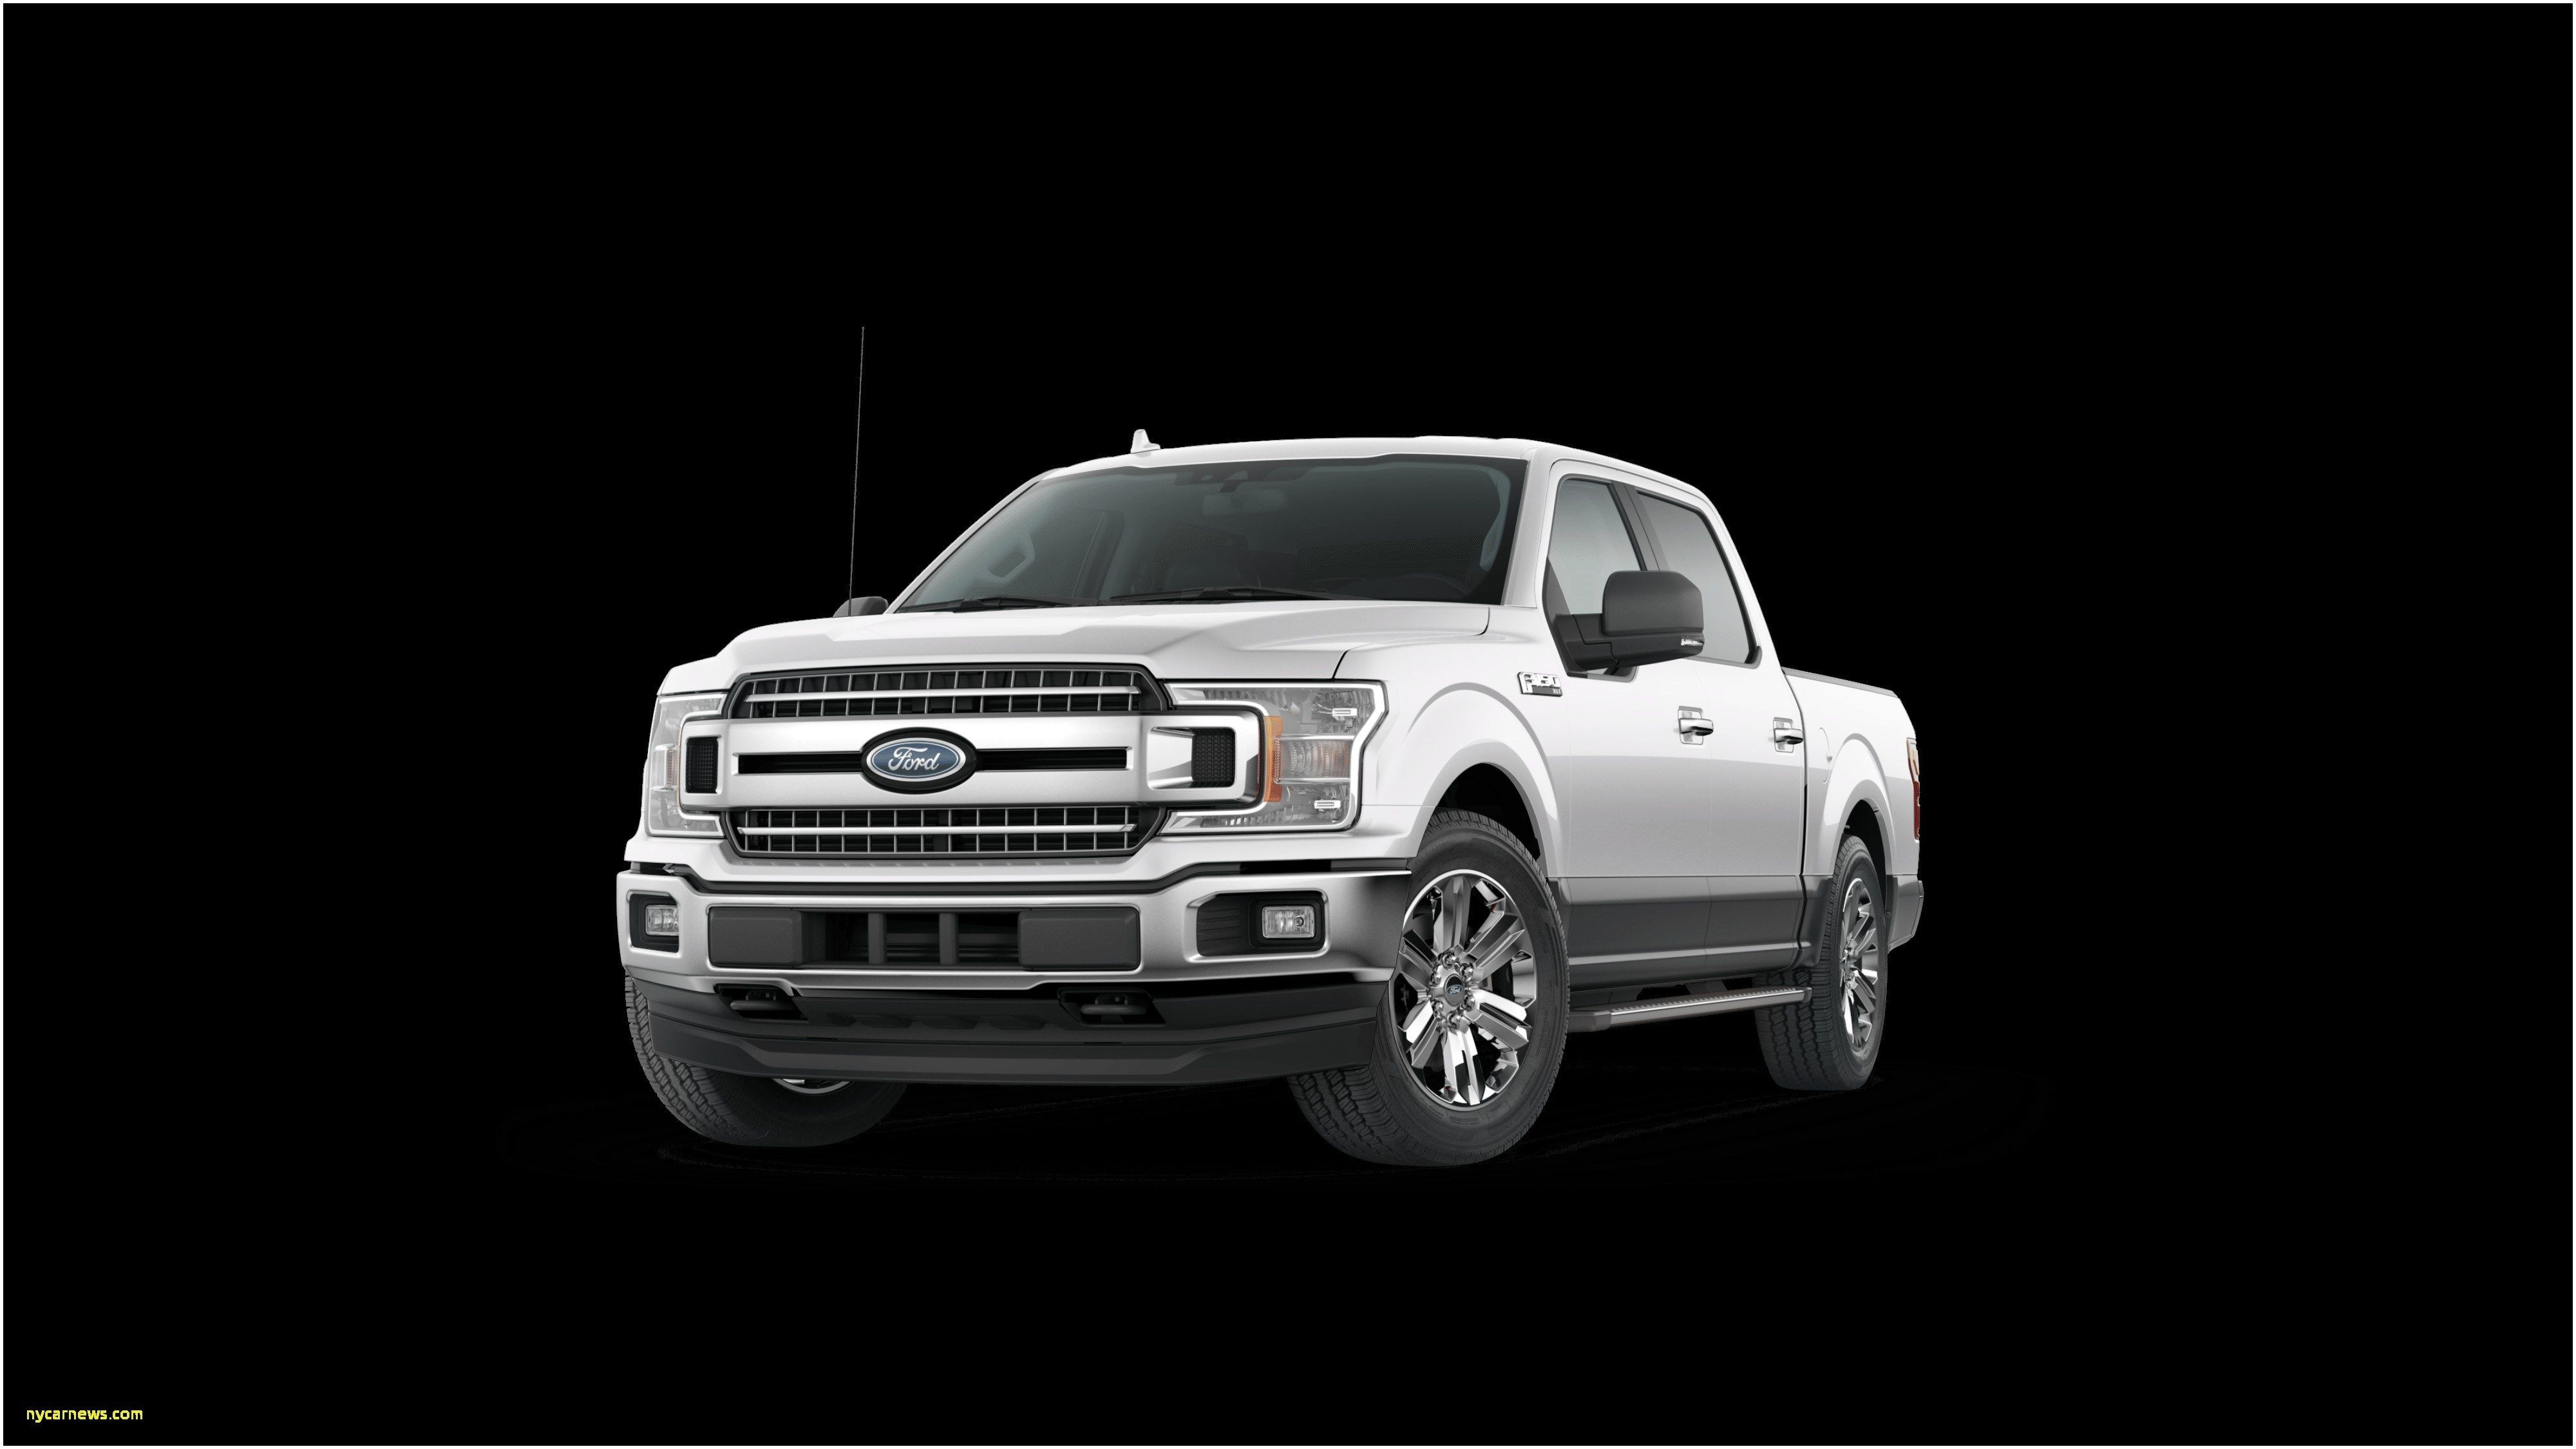 New Ford Electric Car Lease Deals Ford Electric Car Ford F150